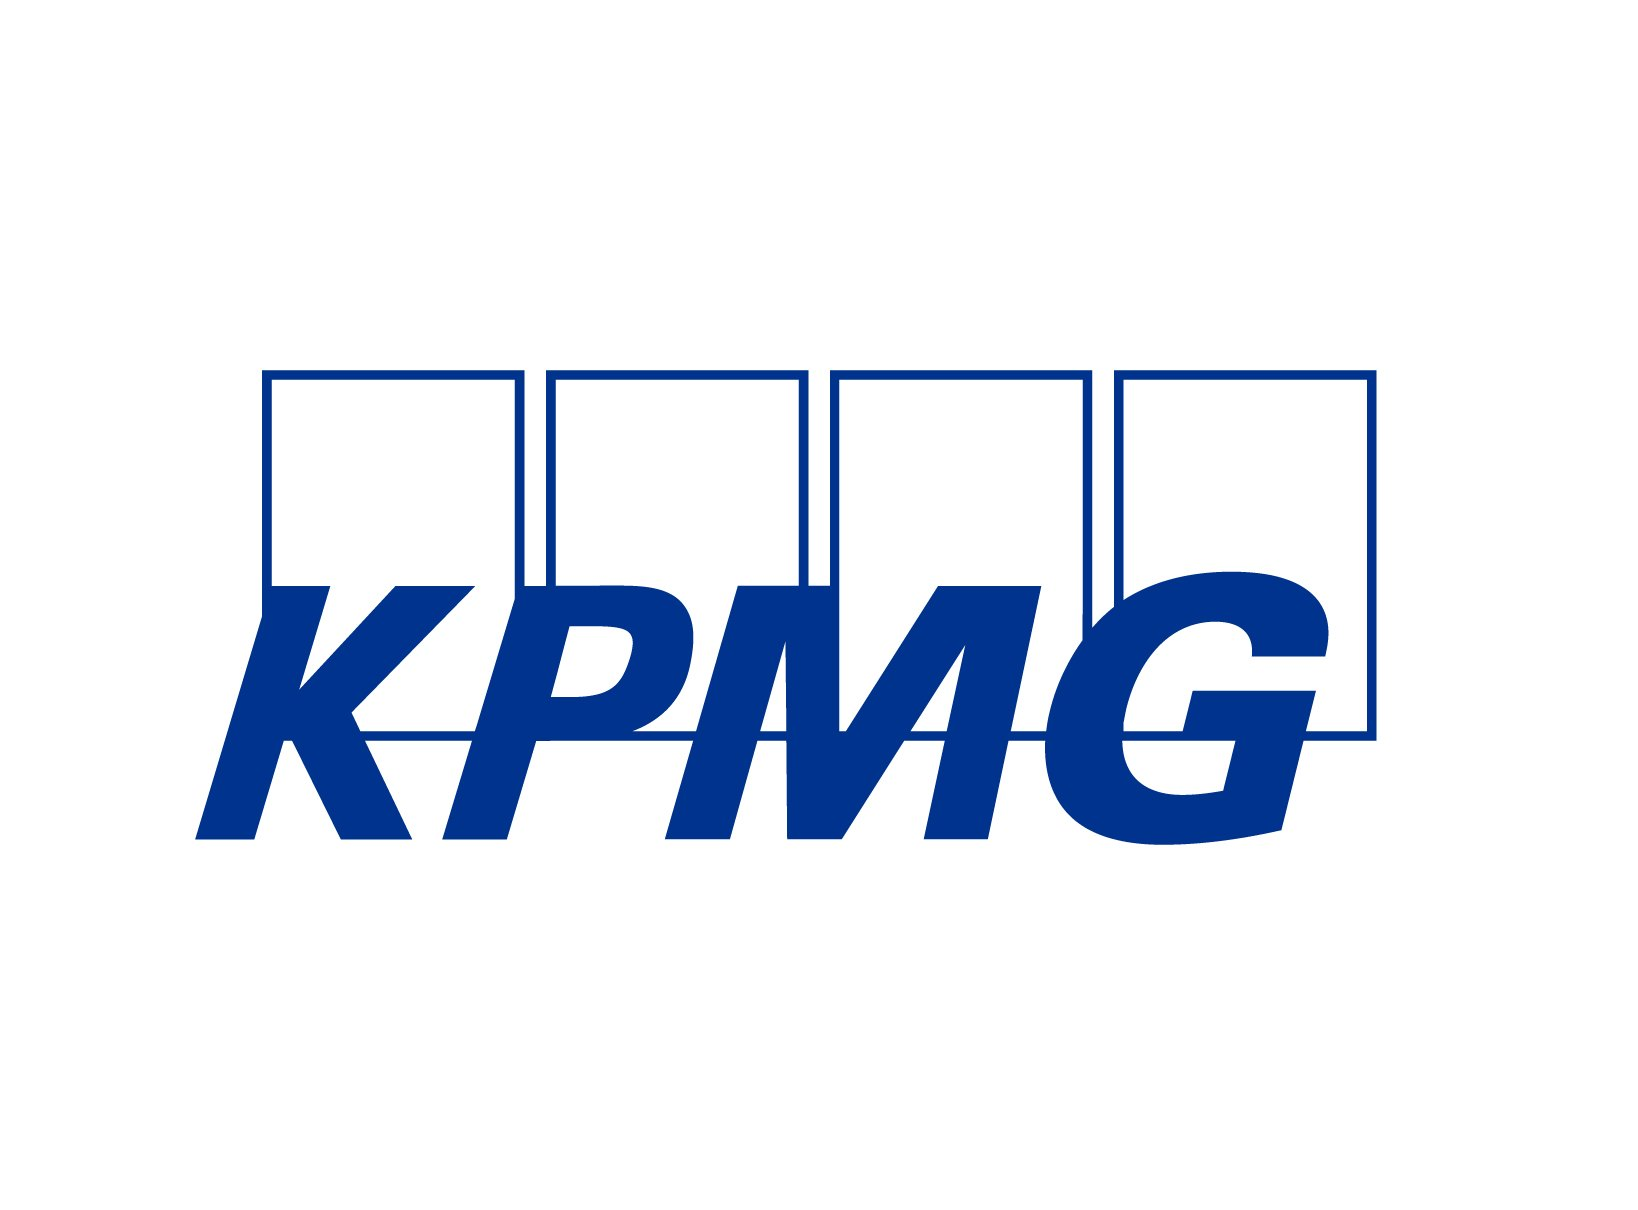 KPMG Agrees to Acquire Cyberinc